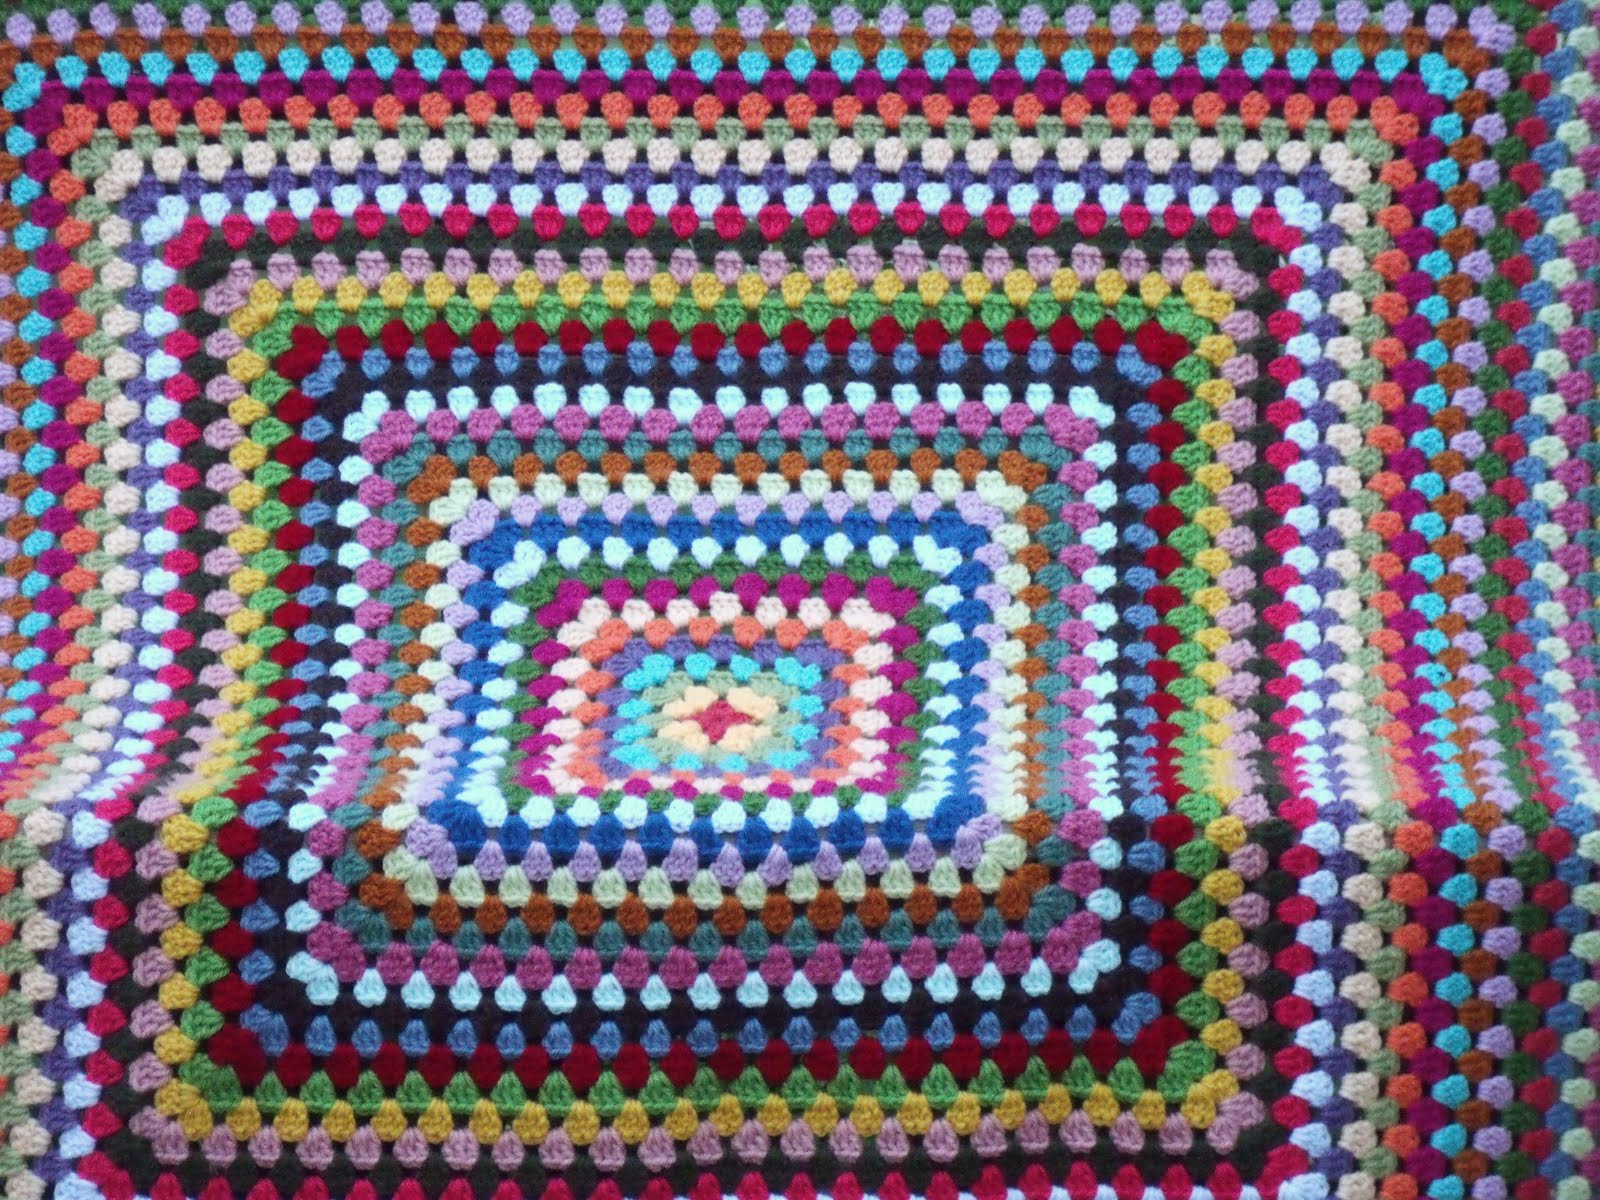 Big Crochet Blanket New Easy Crochet Pattern Granny Square Afghan Tutorial Of Adorable 43 Photos Big Crochet Blanket